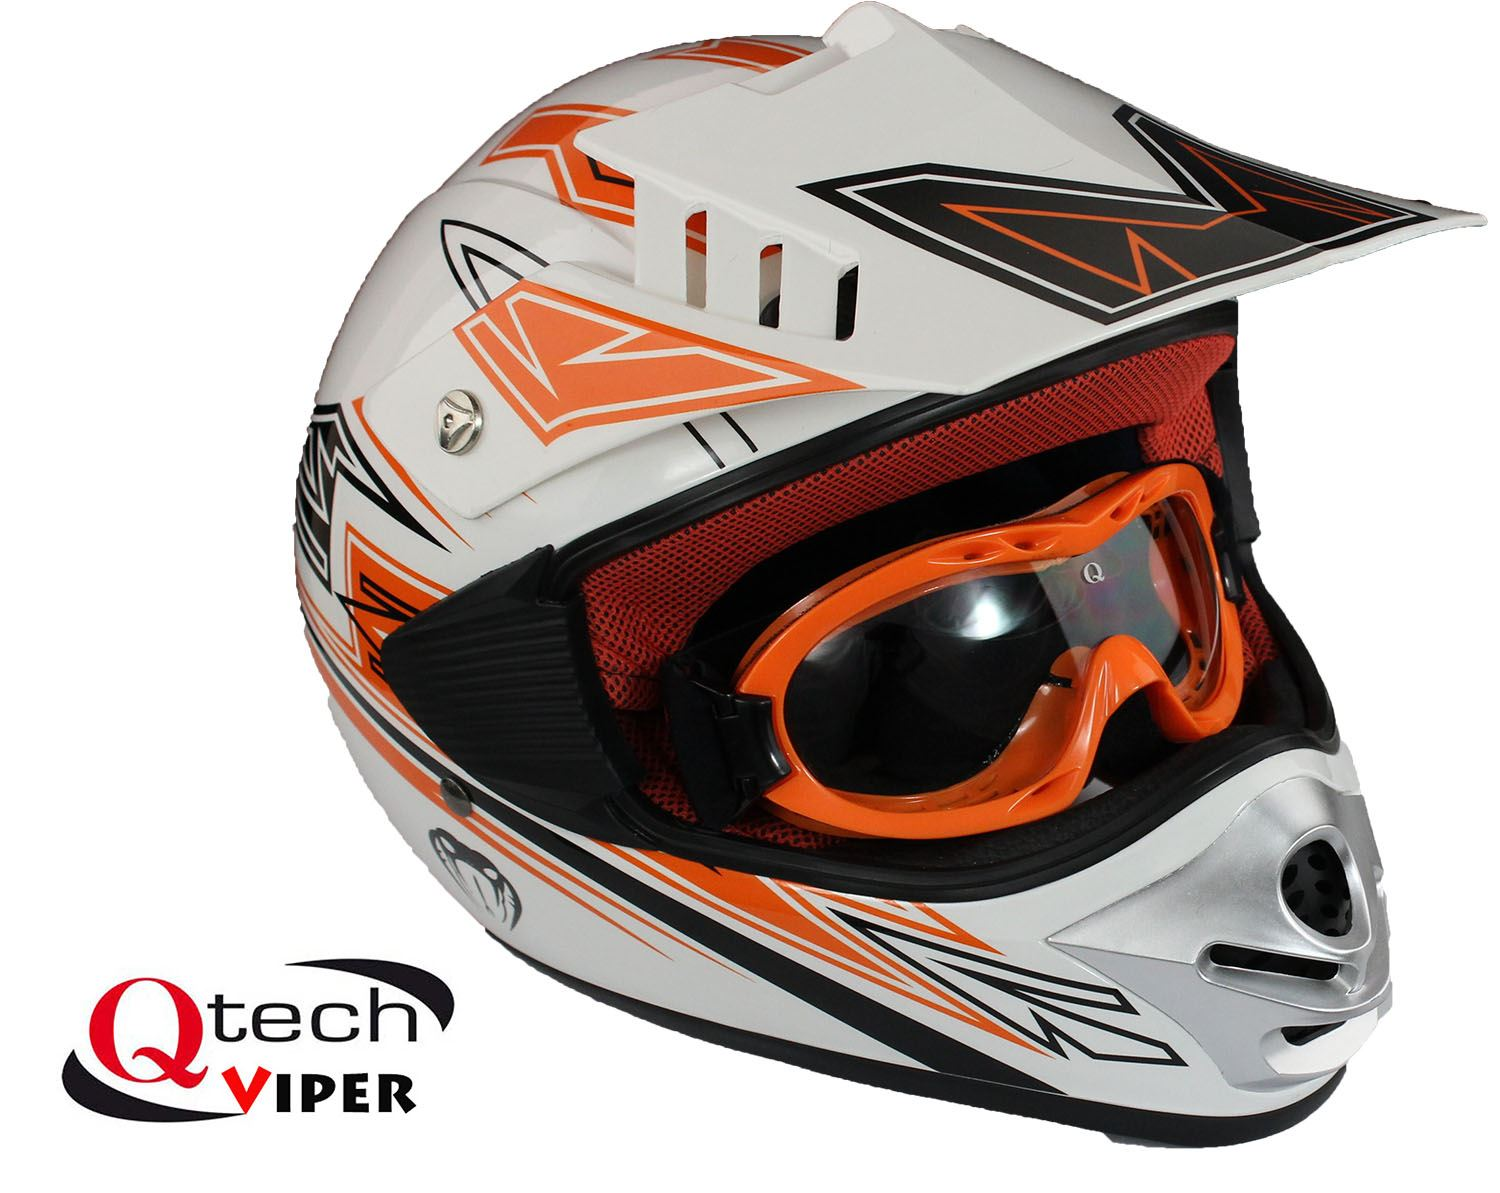 kinder motocross helm mit brille offroad dirt bike ebay. Black Bedroom Furniture Sets. Home Design Ideas